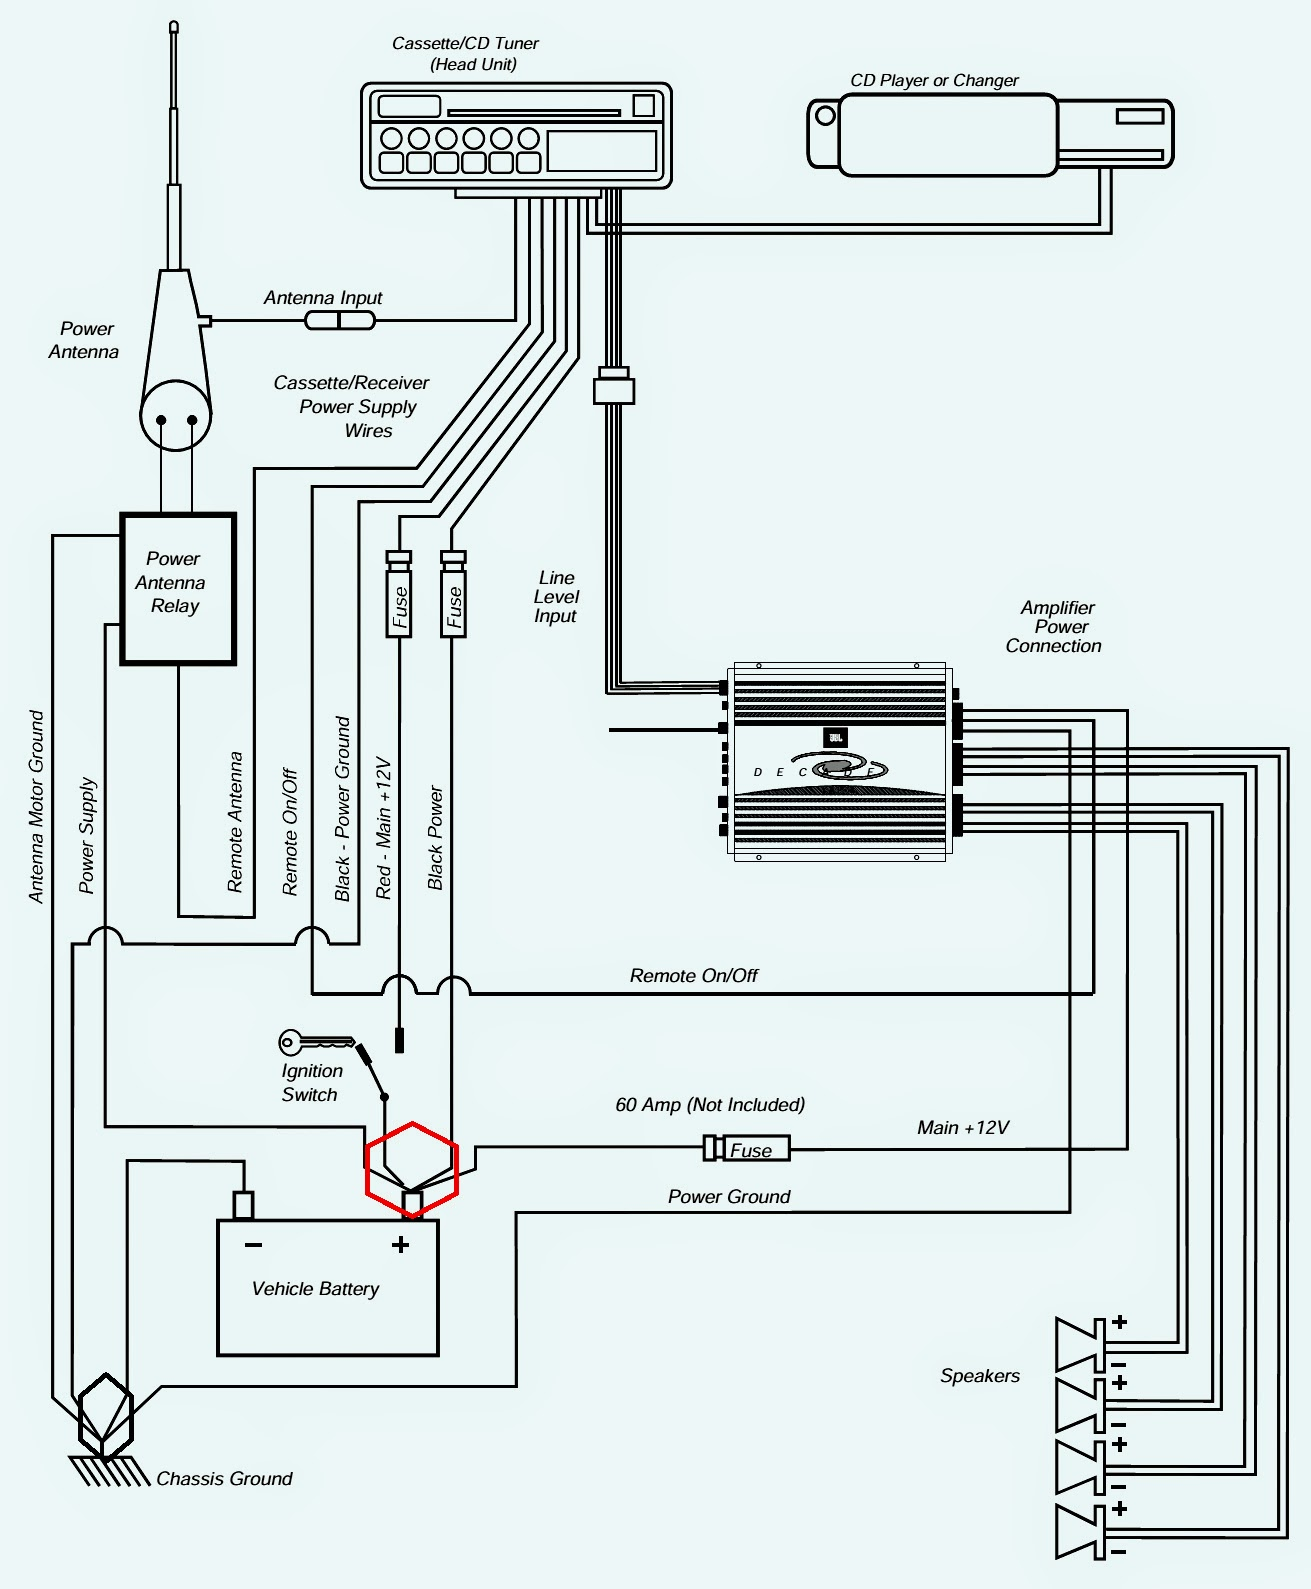 Opel Cd30 Wiring Diagram further Ford Taurus Radio Wiring Diagram With Luxury Typical Car Stereo 54 Unbelievable To 2011 Fusion as well 2008 Hyundai Elantra Engine Diagram Pdf Free additionally Wiring Diagram Xd1228 Installation Fuse Dual Xd1228 User Inside Radio further Dash and tail lights not working. on toyota car stereo wiring